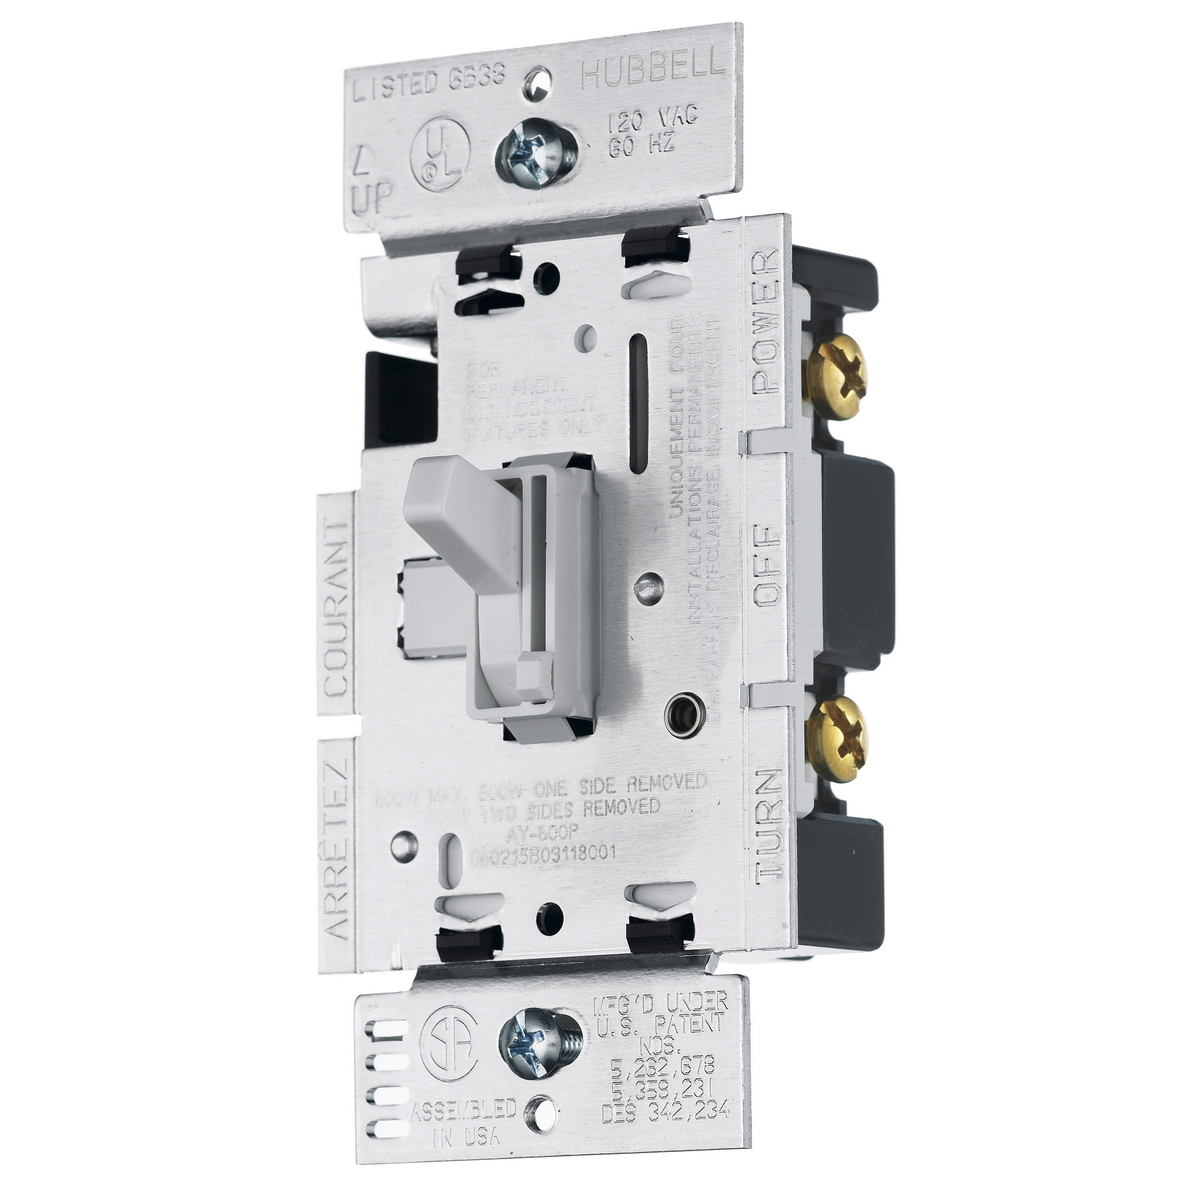 rayfsqfw dimmers fan speed controls residential devices rh hubbell com residential & wiring devices division residential & wiring devices division